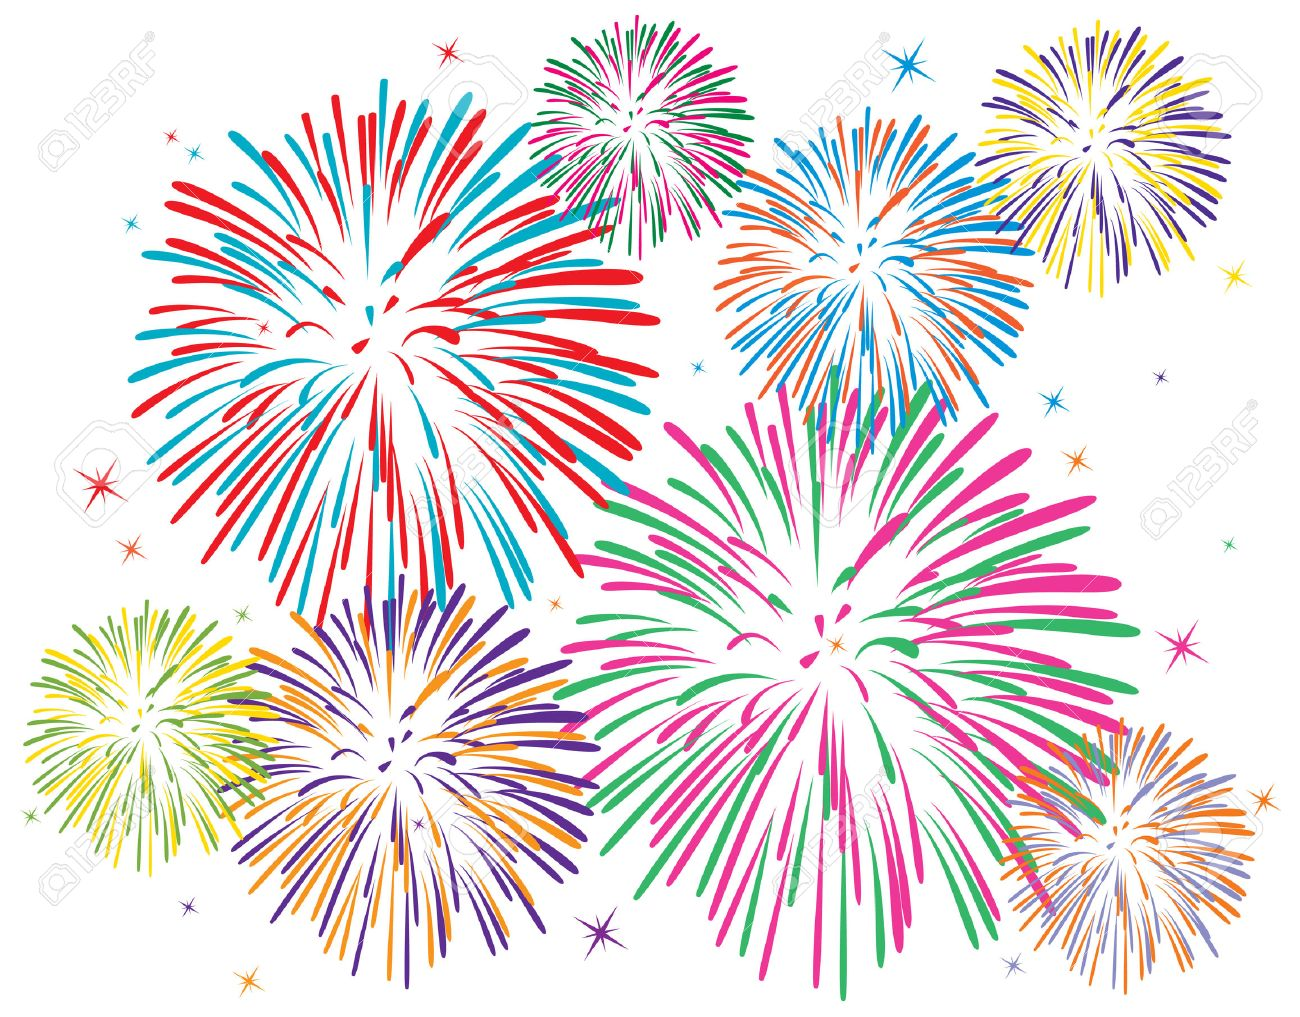 Colorful Fireworks On White Background Royalty Free Cliparts Vectors And Stock Illustration Image 8492402